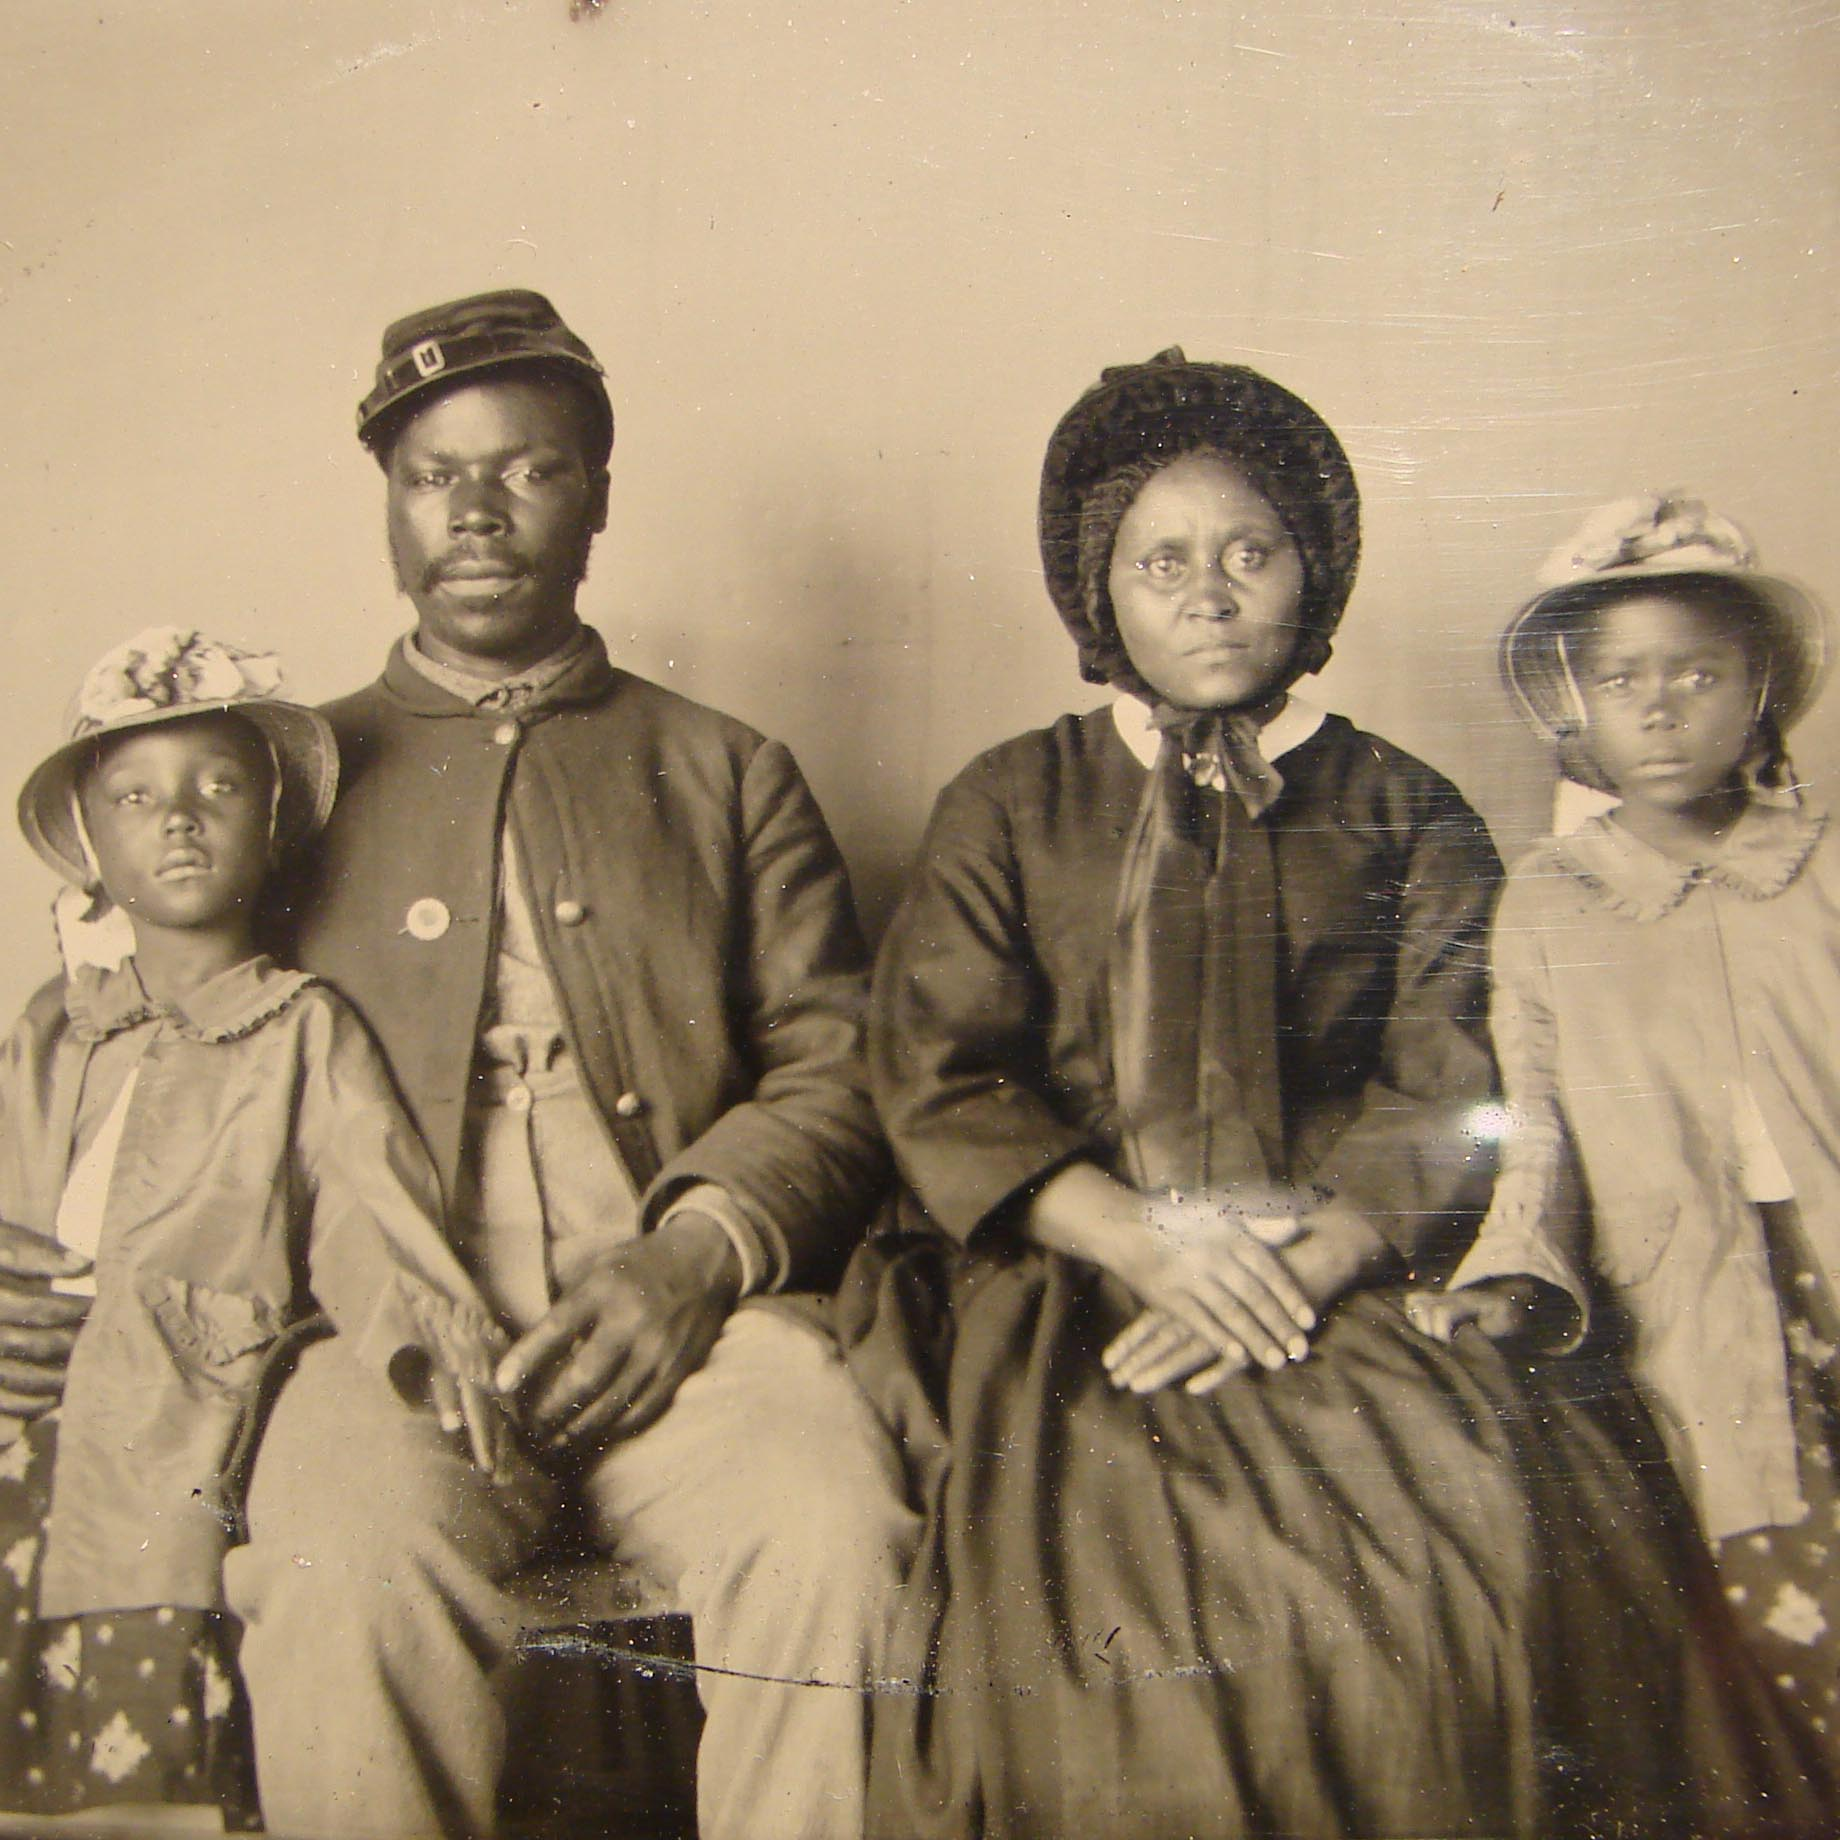 A Black civil war soldier sits with his family for a portrait